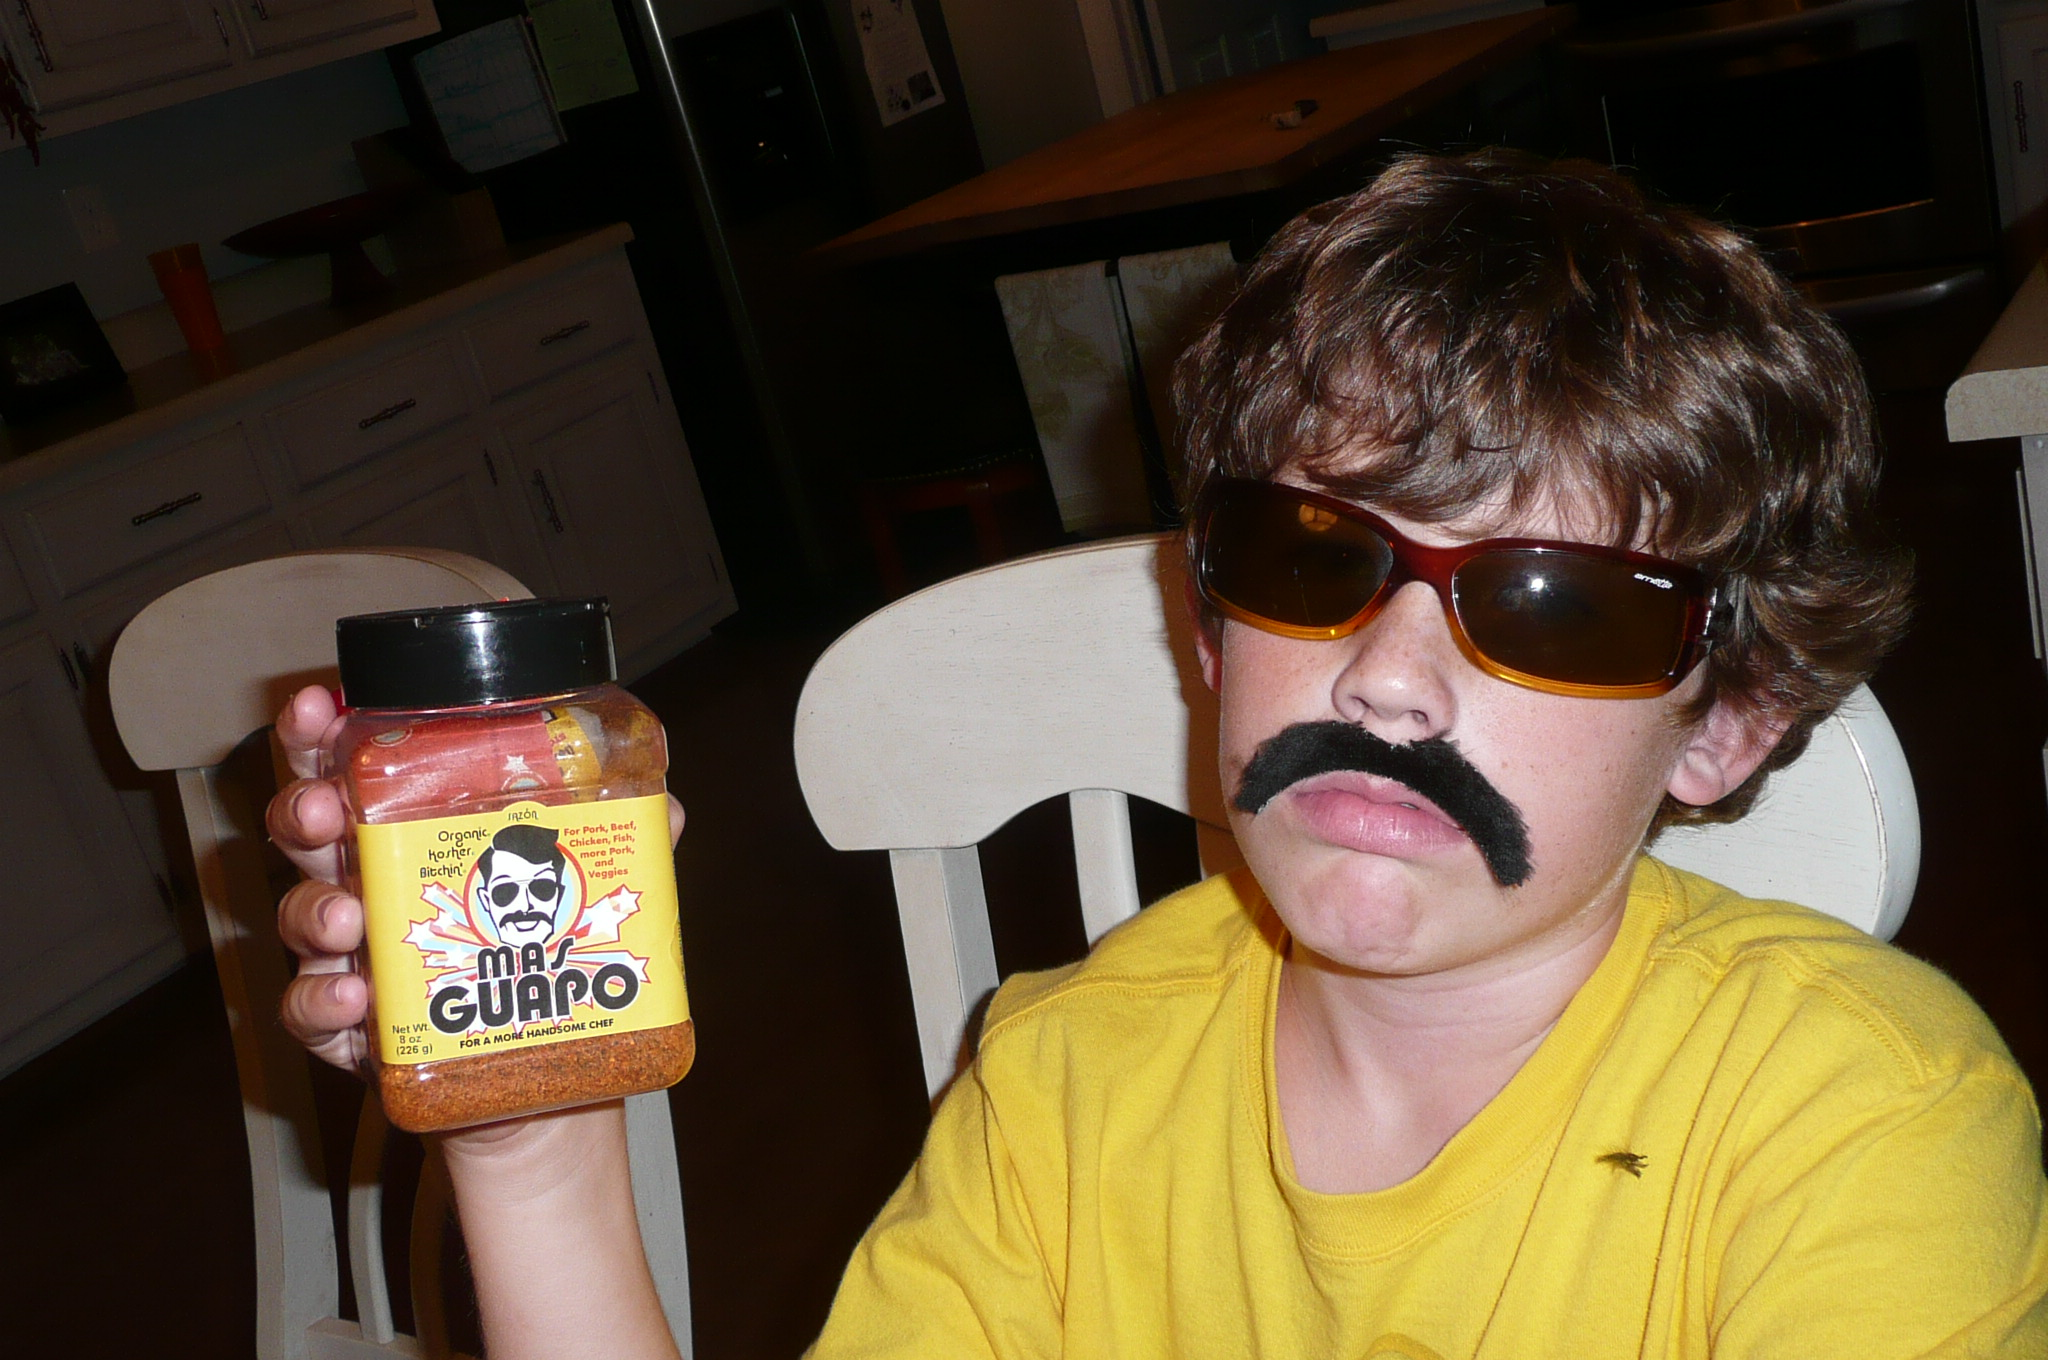 """Mas Guapo helped me get the lead in my school's production of """"Smokey and the Bandit II"""". Thanks, Mas Guapo!"""